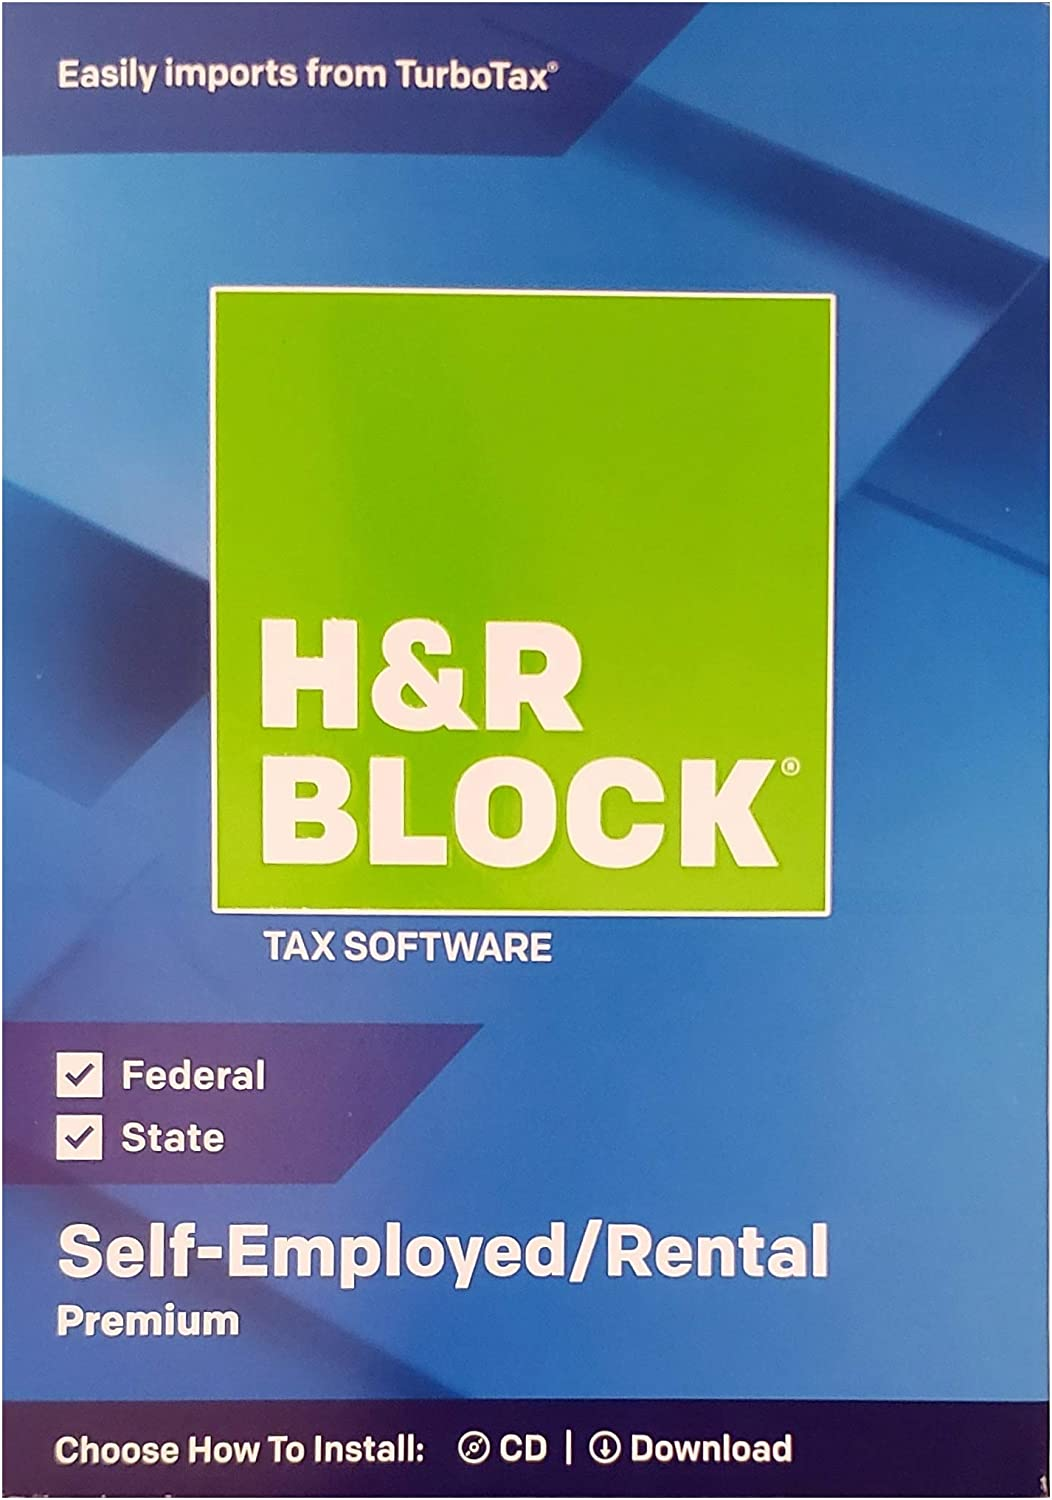 H&R Block Premium 2018 Self-Employed/Rental Property Owners Tax Software, Traditional Disc